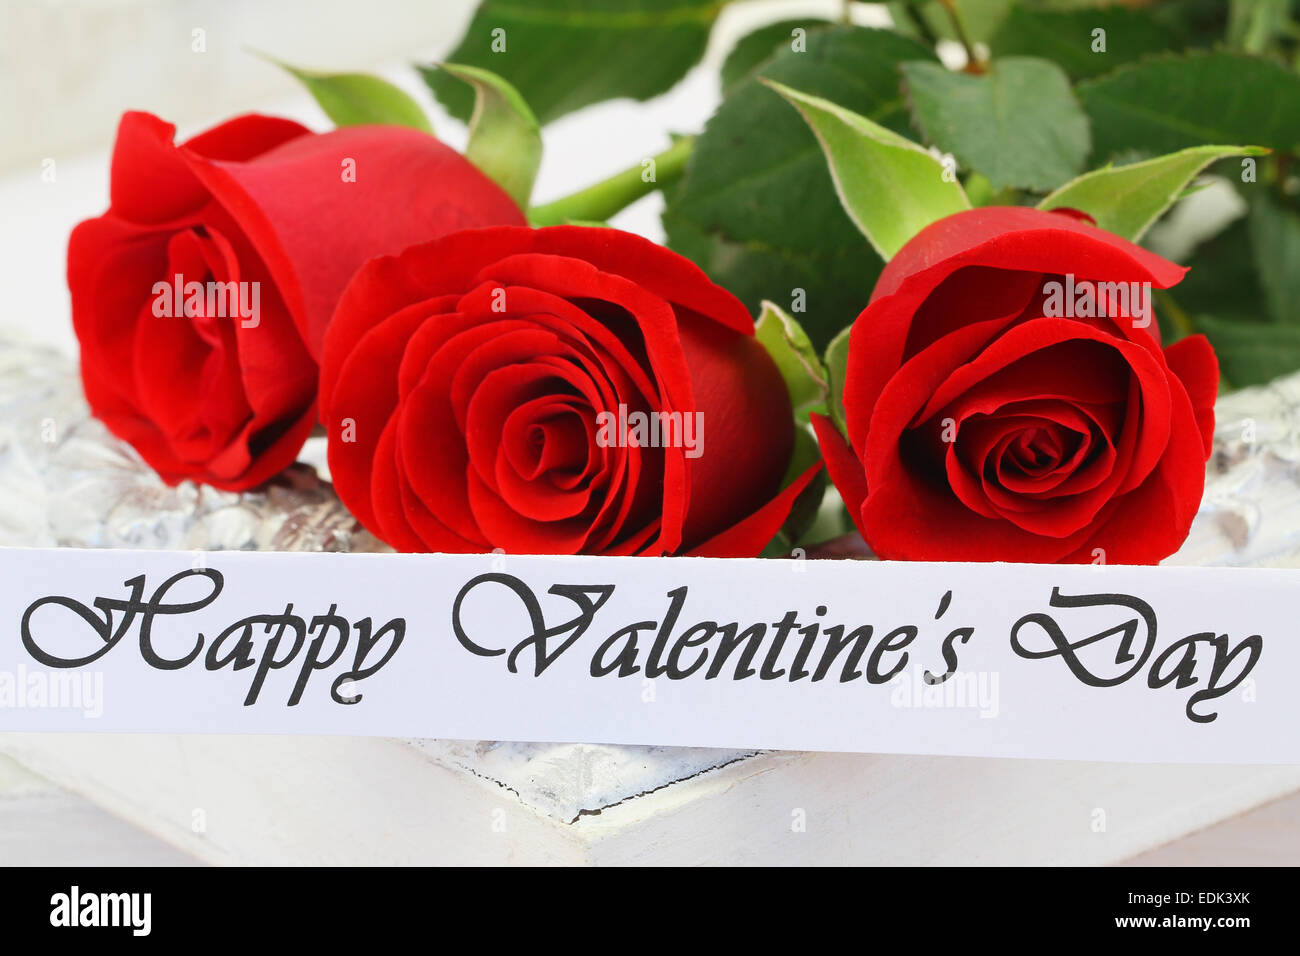 Happy Valentines Day Card With Three Red Roses Stock Photo